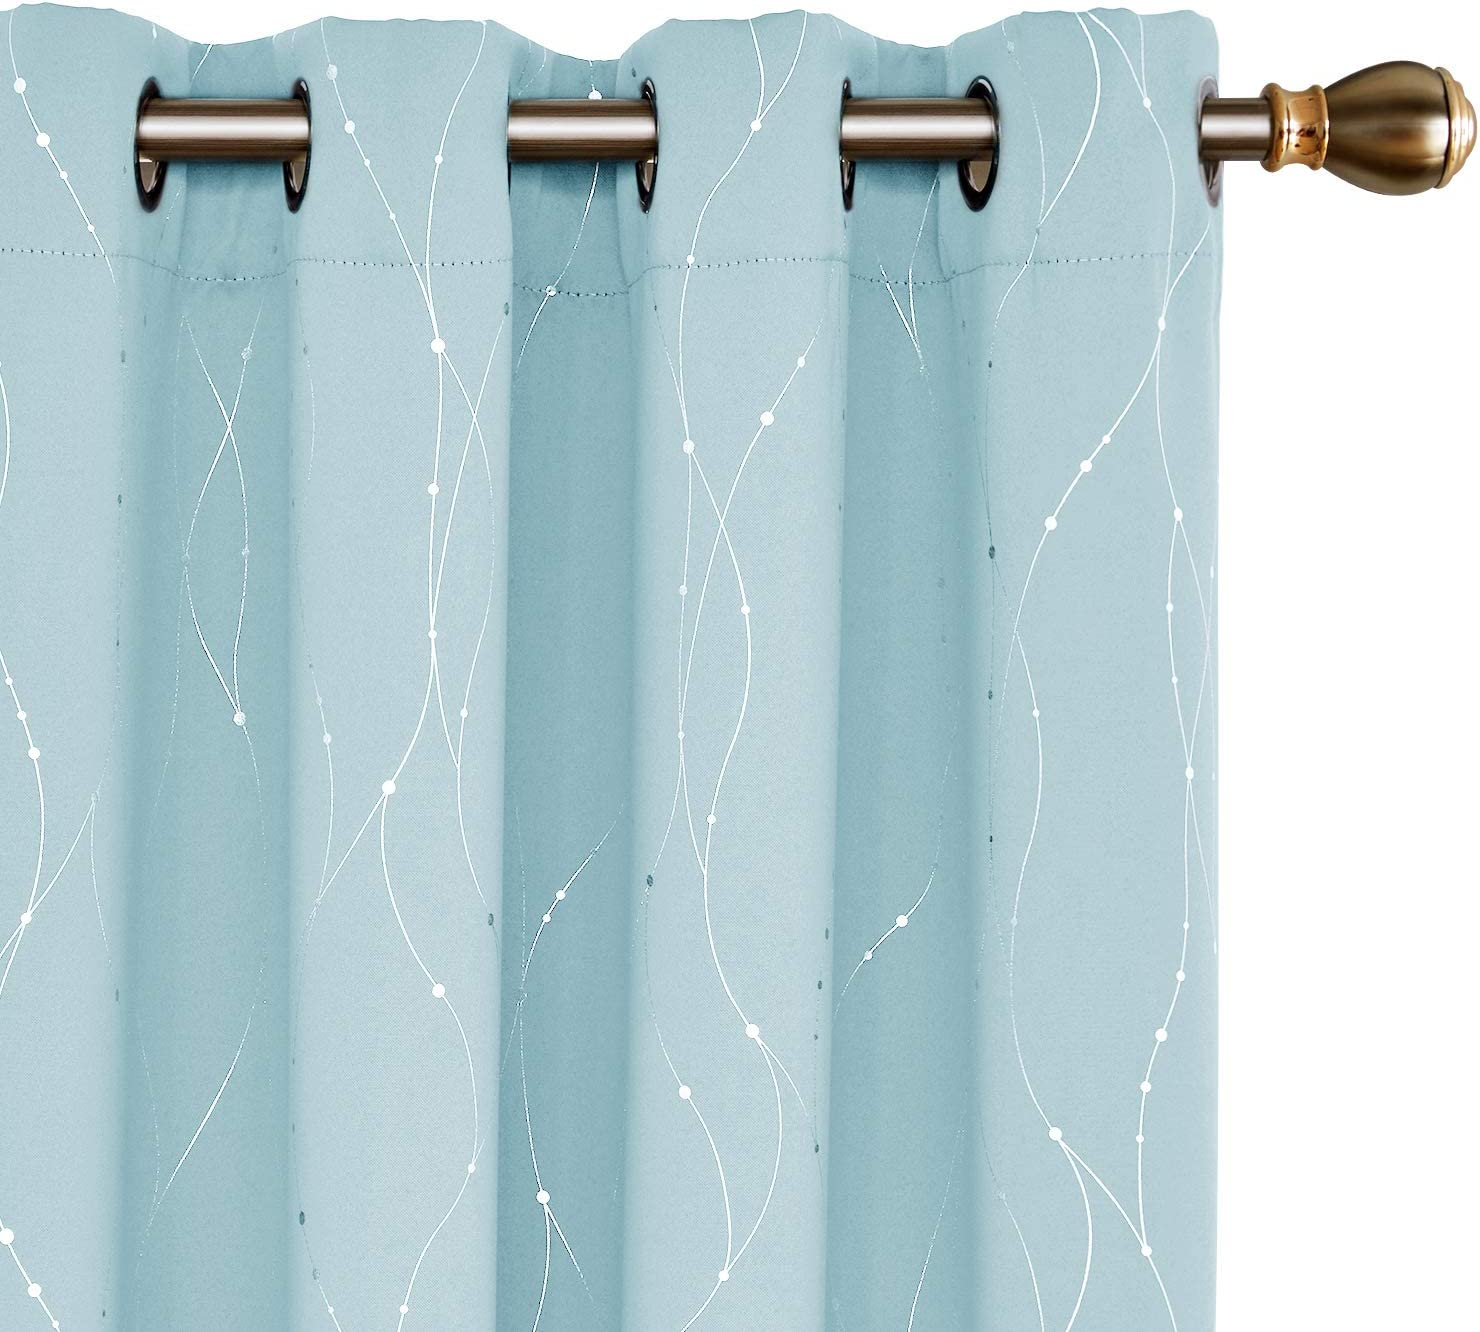 Deconovo Sky Blue Blackout Grommet Curtains Pair Thermal Insulated Window Curtains with Wave Line Dots Printed Pattern for Kids Room 52 x 95 Inch Sky Blue 2 Panels